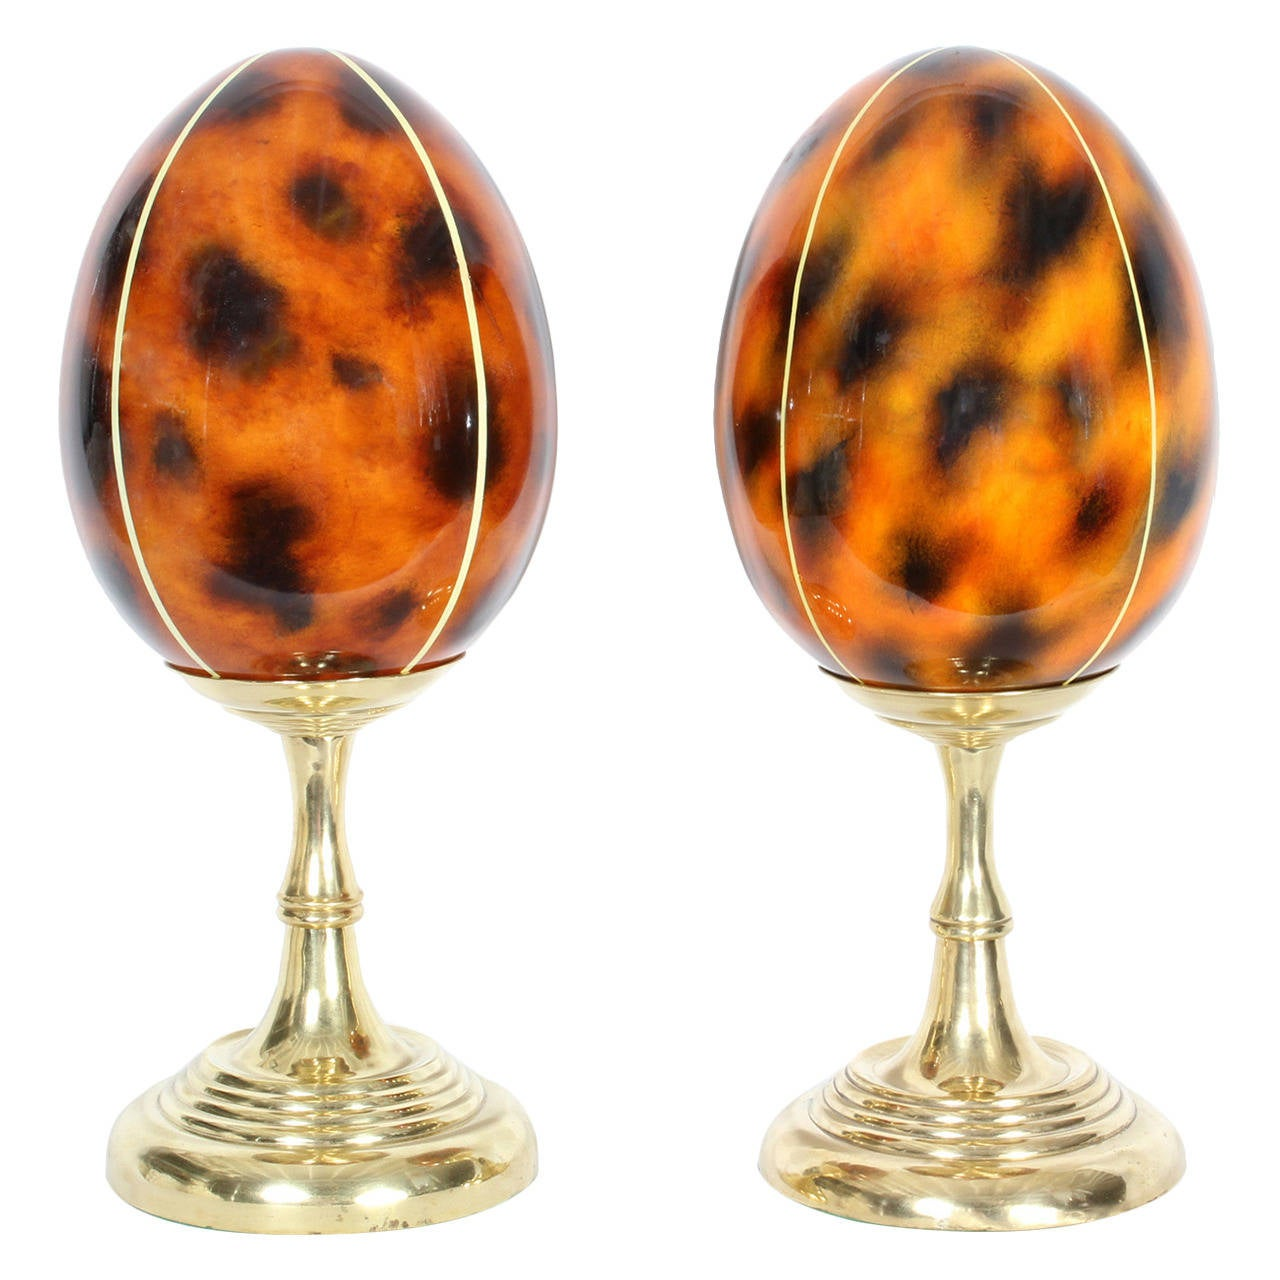 Pair of Faux Tortoiseshell Eggs on Turned Brass Stands